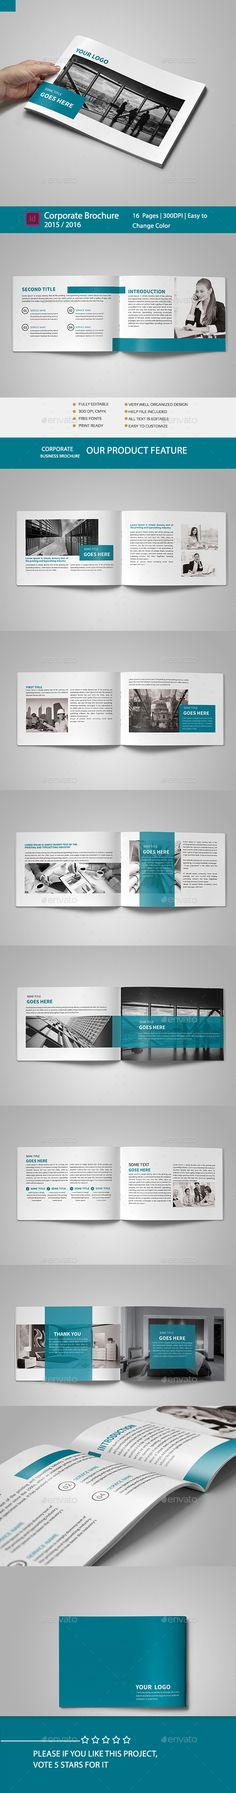 Corporate Brochure Template InDesign INDD. Download here: http://graphicriver.net/item/corporate-brochure-template/16396100?ref=ksioks